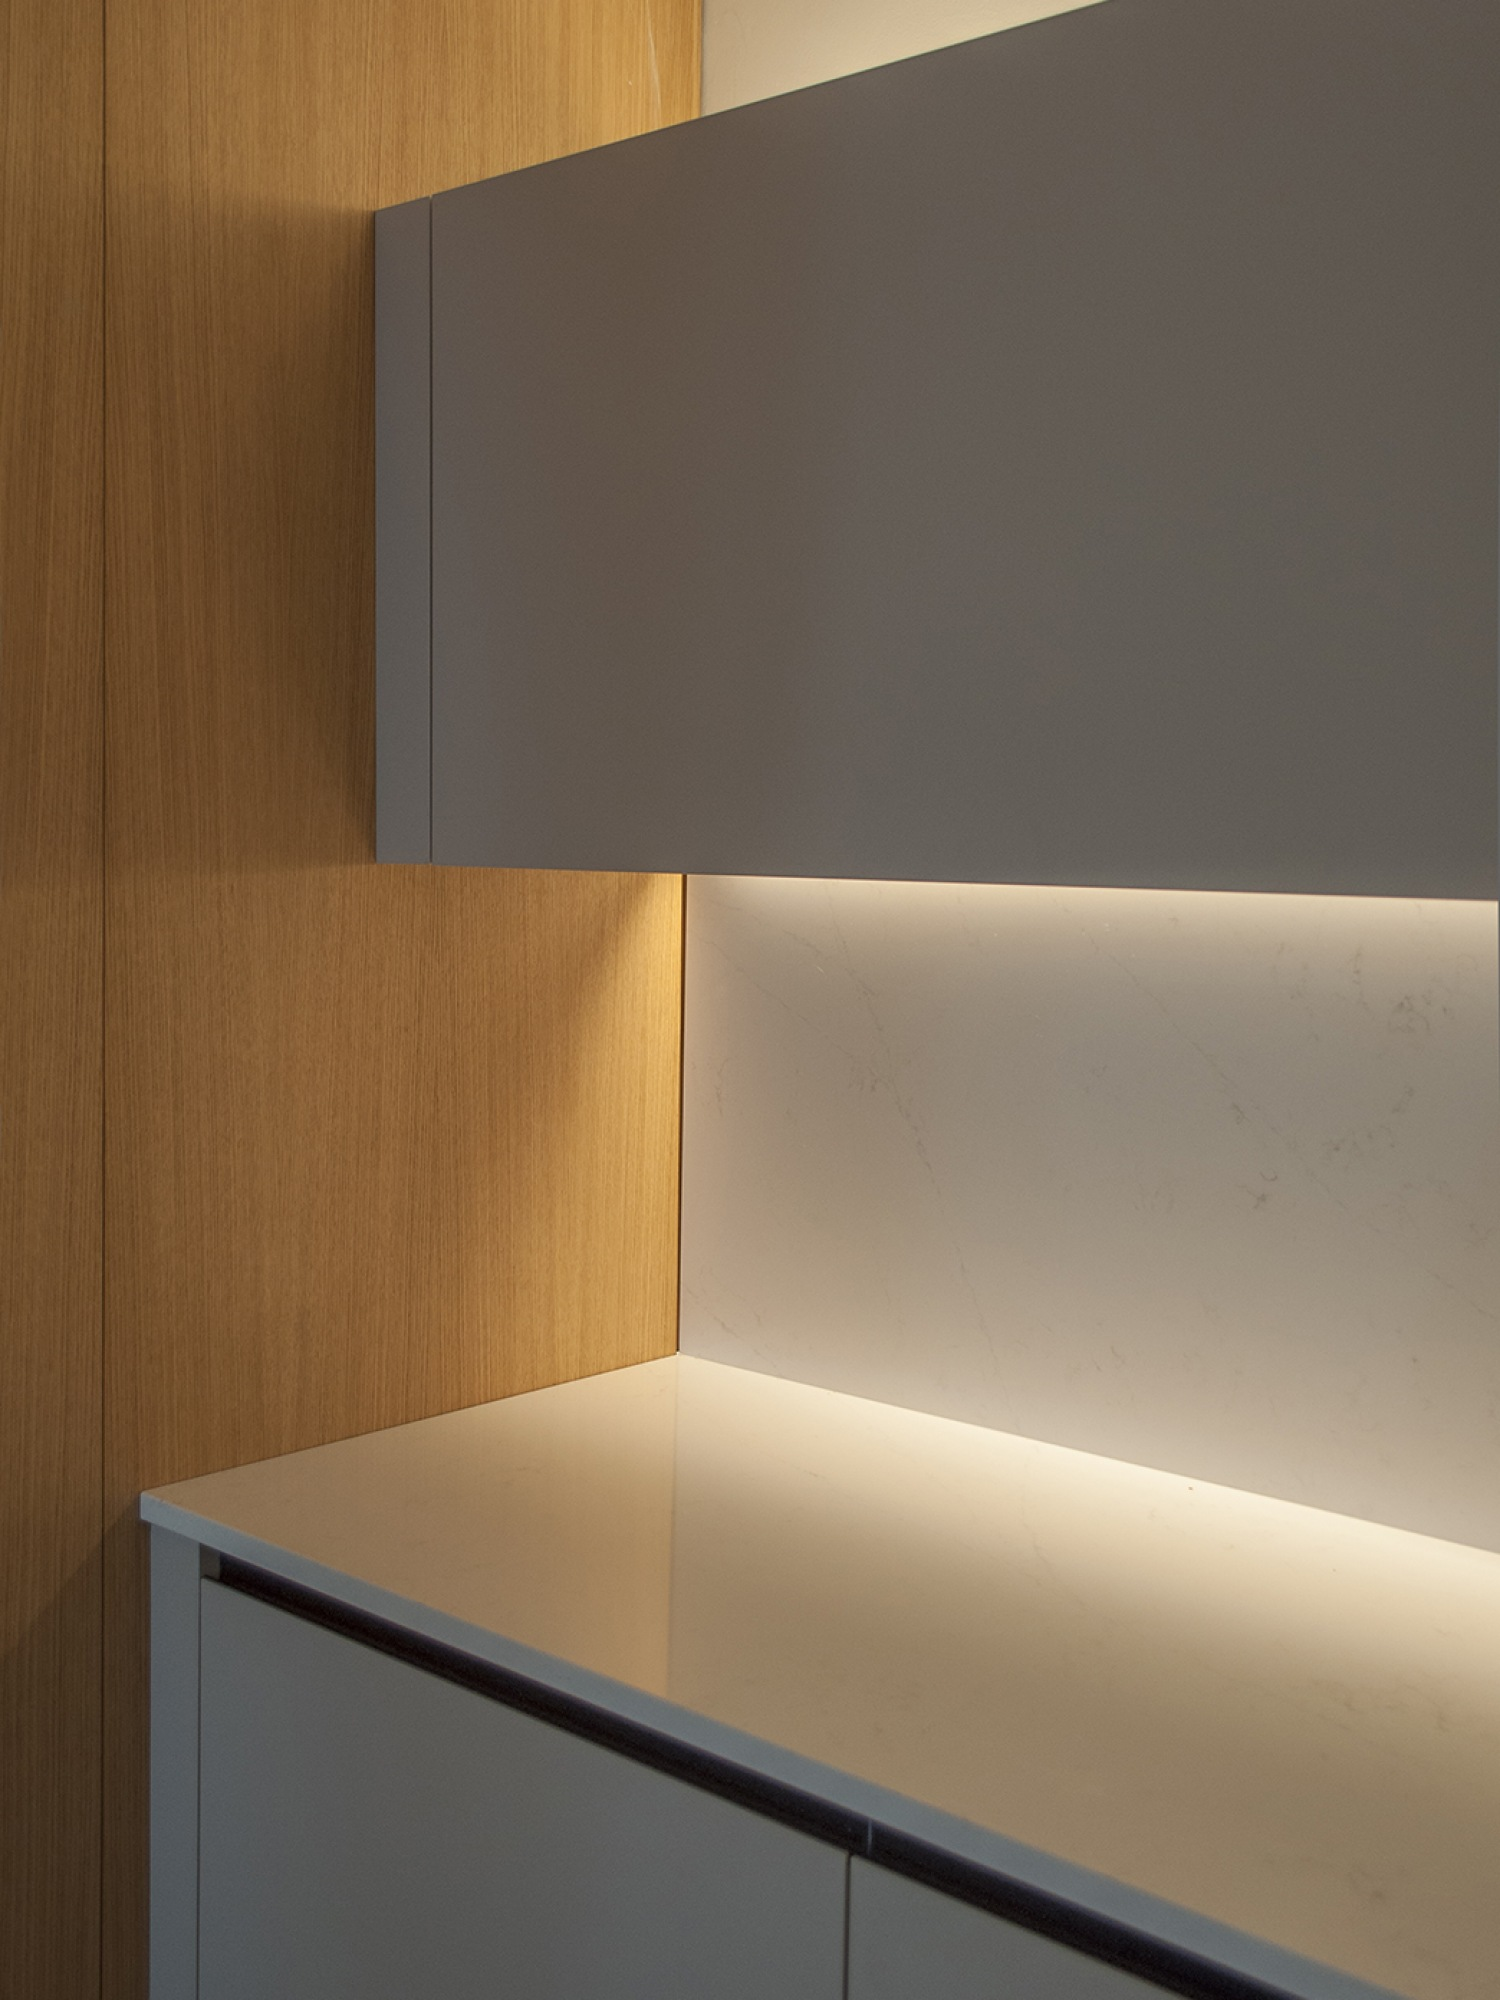 14-architecture-sitges-interior-design-barcelona-kitchen-modern-led-silestone-wood